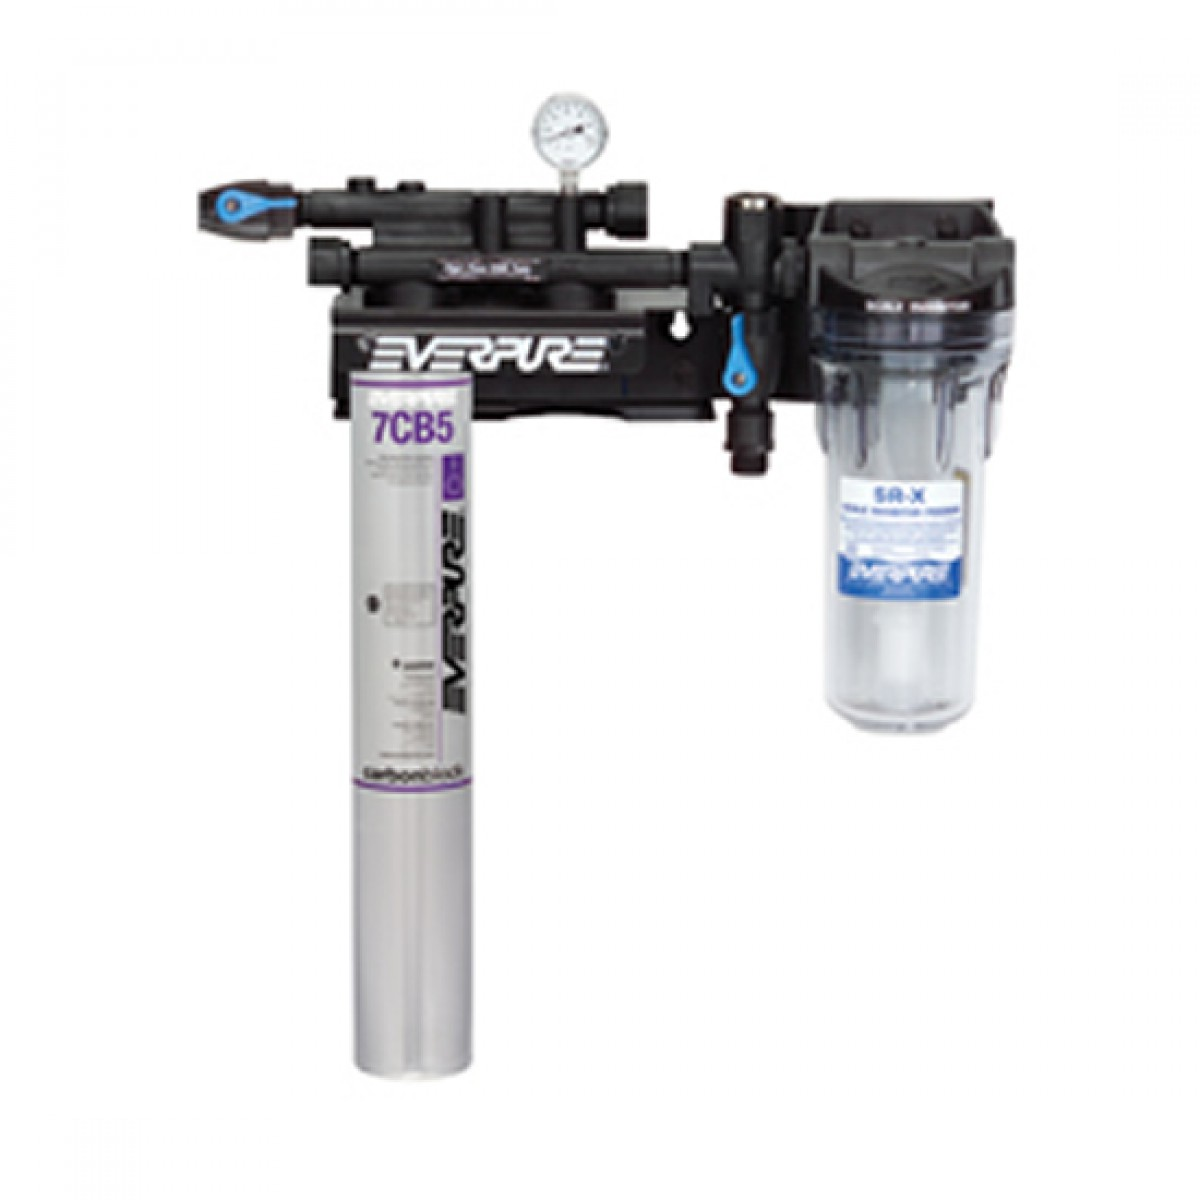 Ev9797 21 Everpure Commercial Water Filter System